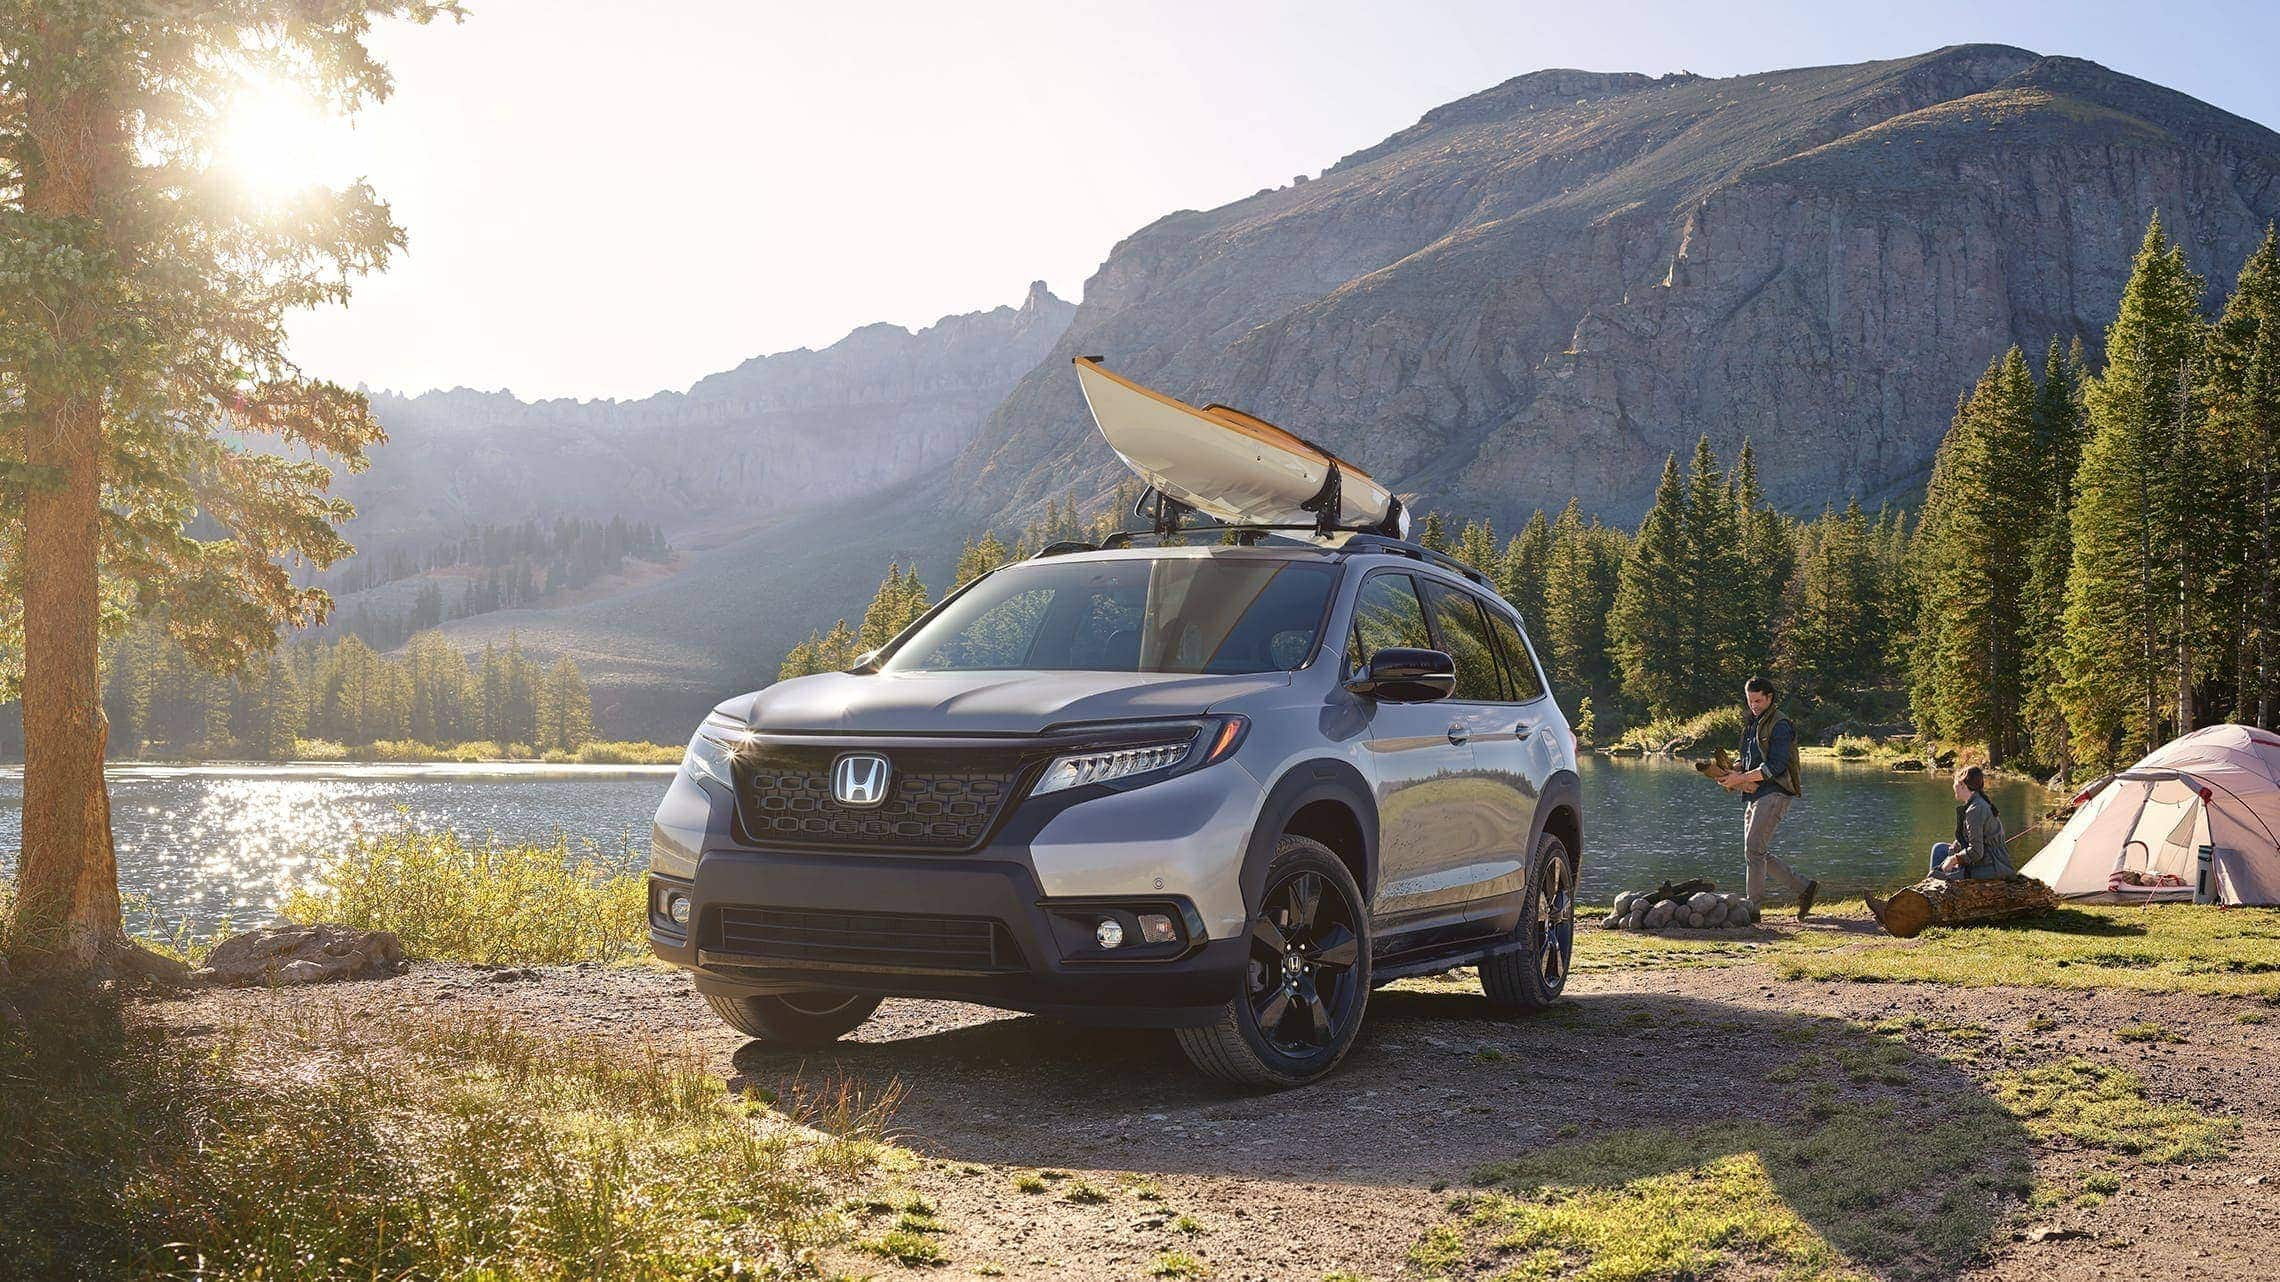 Driver-side front 3/4 view of 2019 Honda Passport Elite in Lunar Silver Metallic, with accessory kayak attachment, parked at a lakeside campground with a male and female camper.